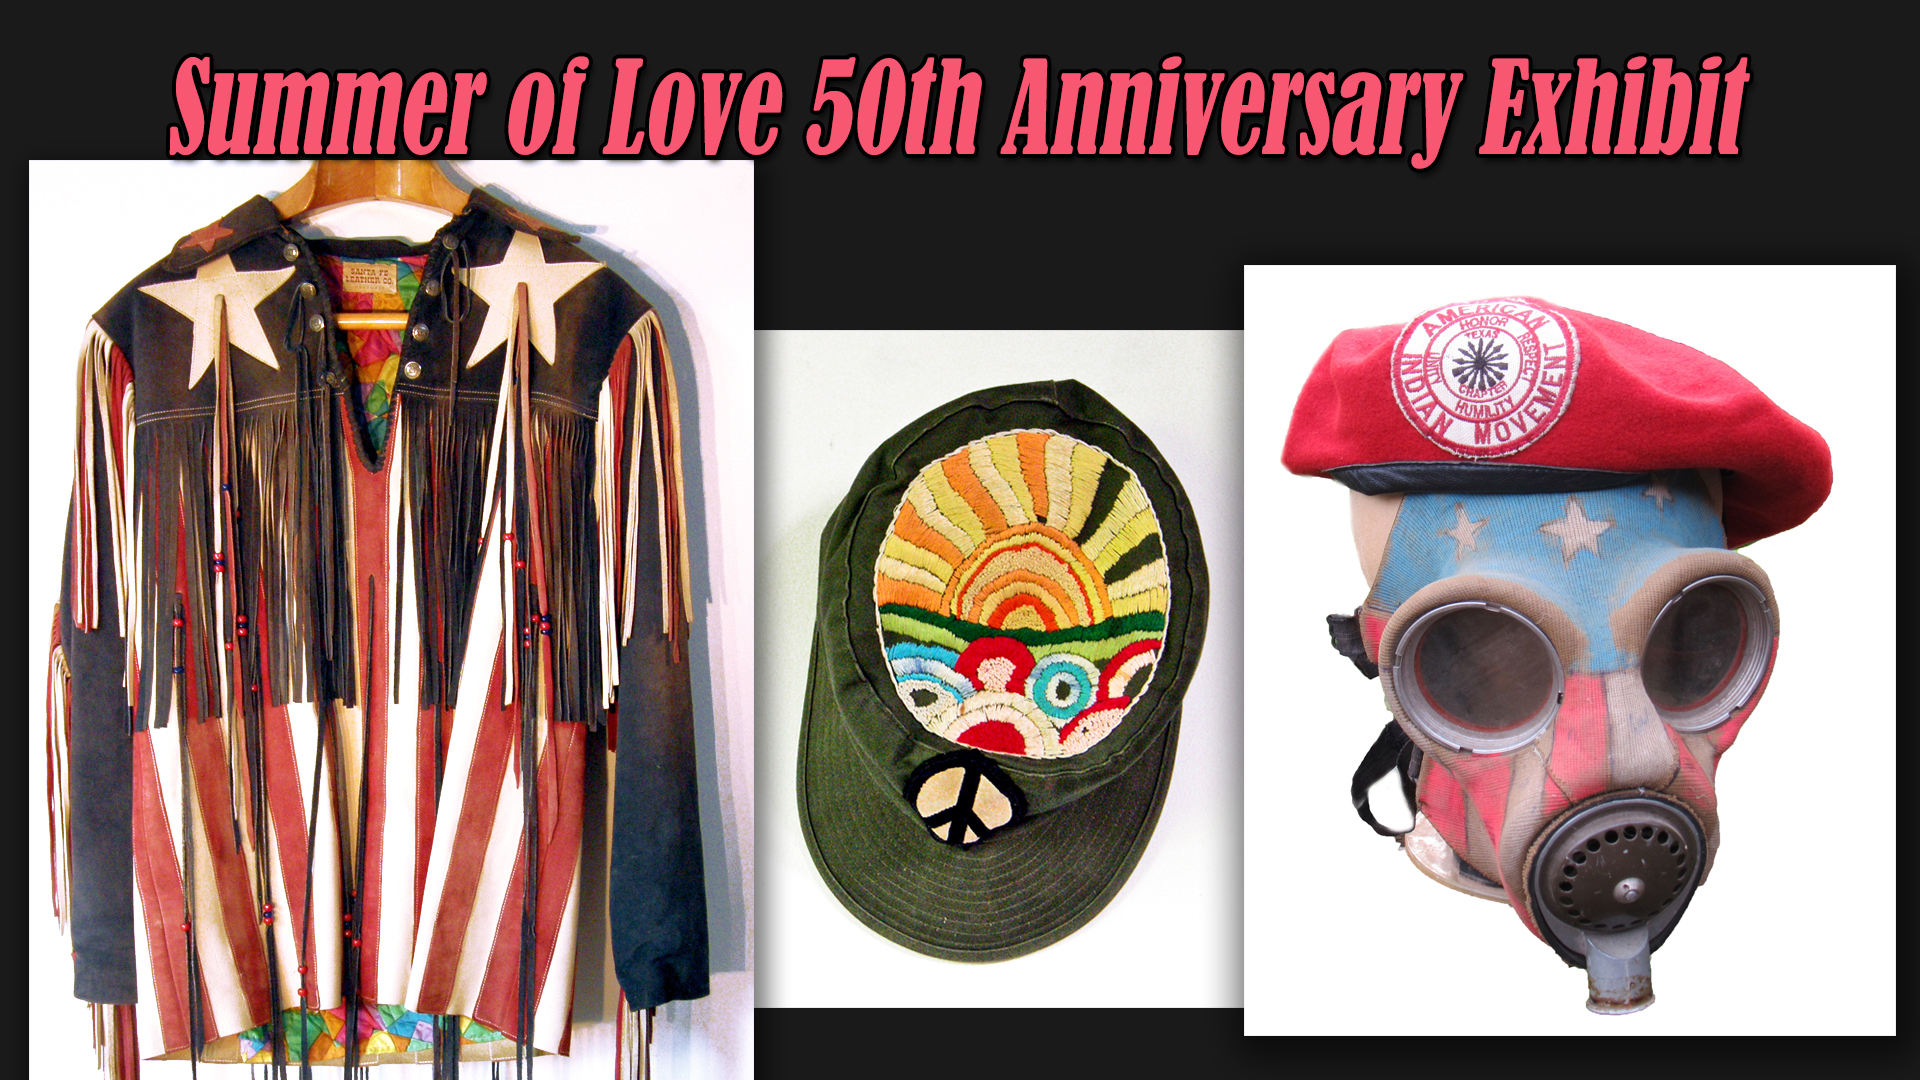 Special Exhibition: 50th Anniversary of the Summer of Love